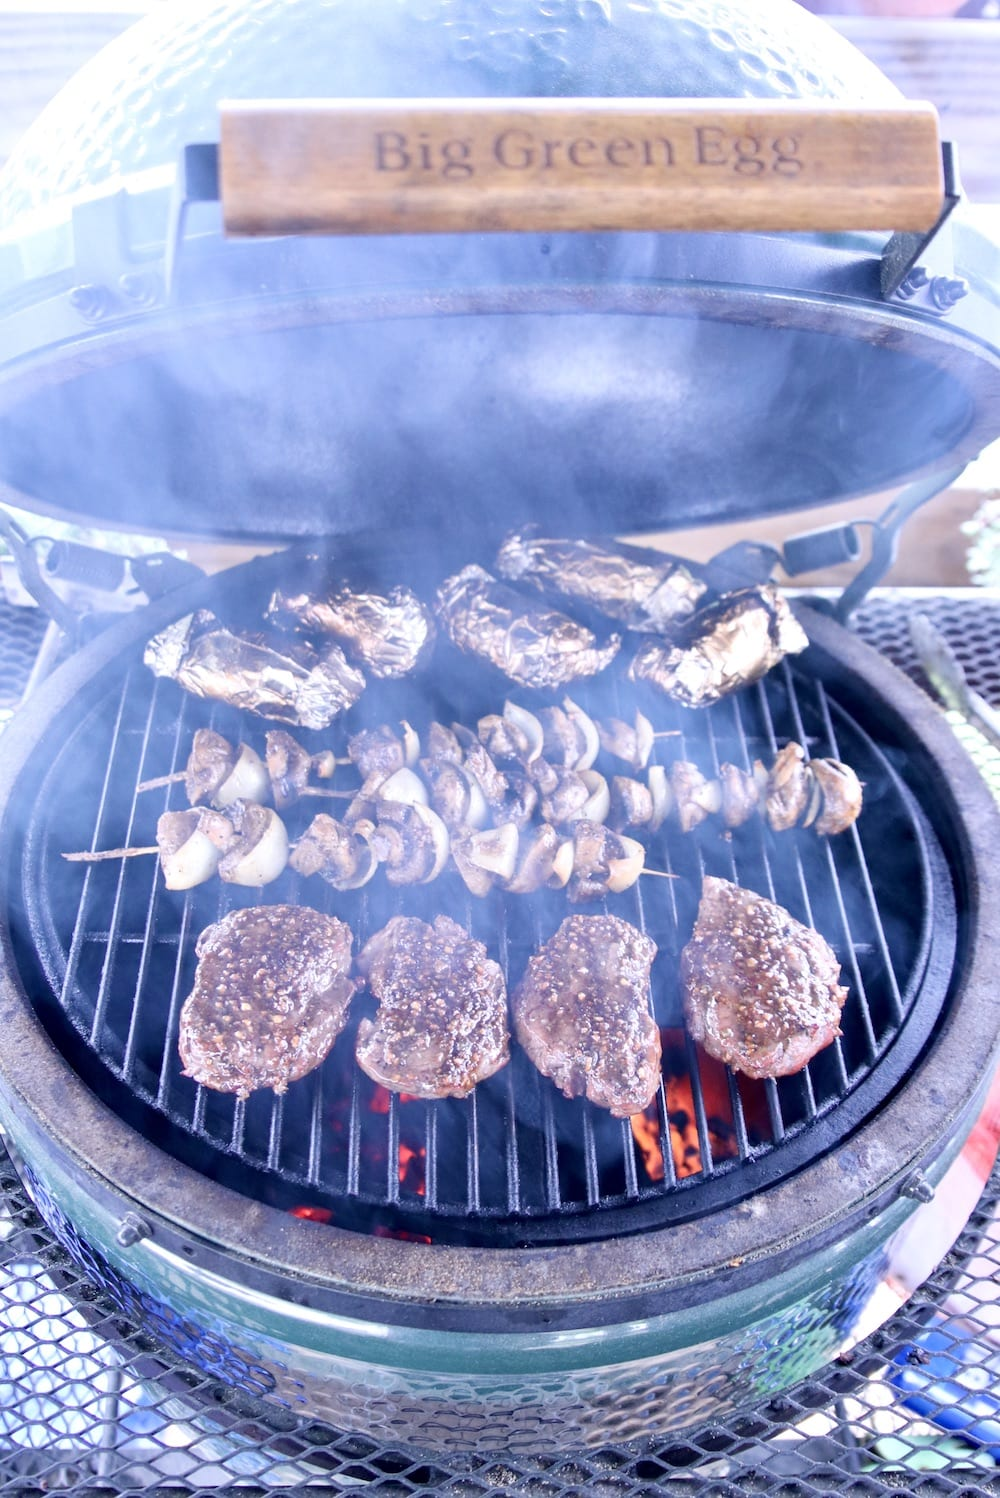 big green egg grill with steaks, mushrooms and foil wrapped potatoes